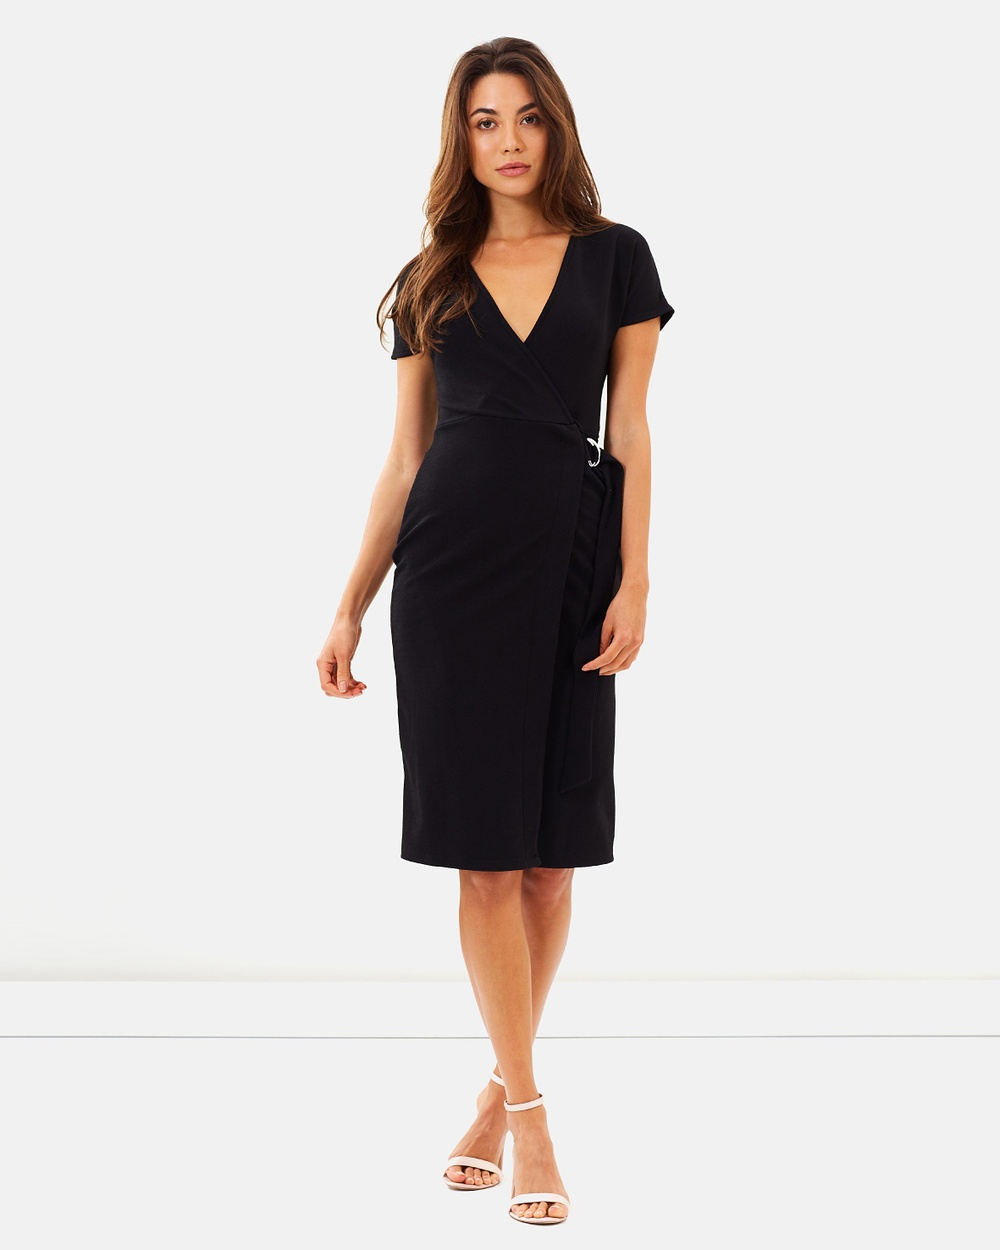 Dorothy Perkins D Ring Wrap Dress Dresses Black D-Ring Wrap Dress